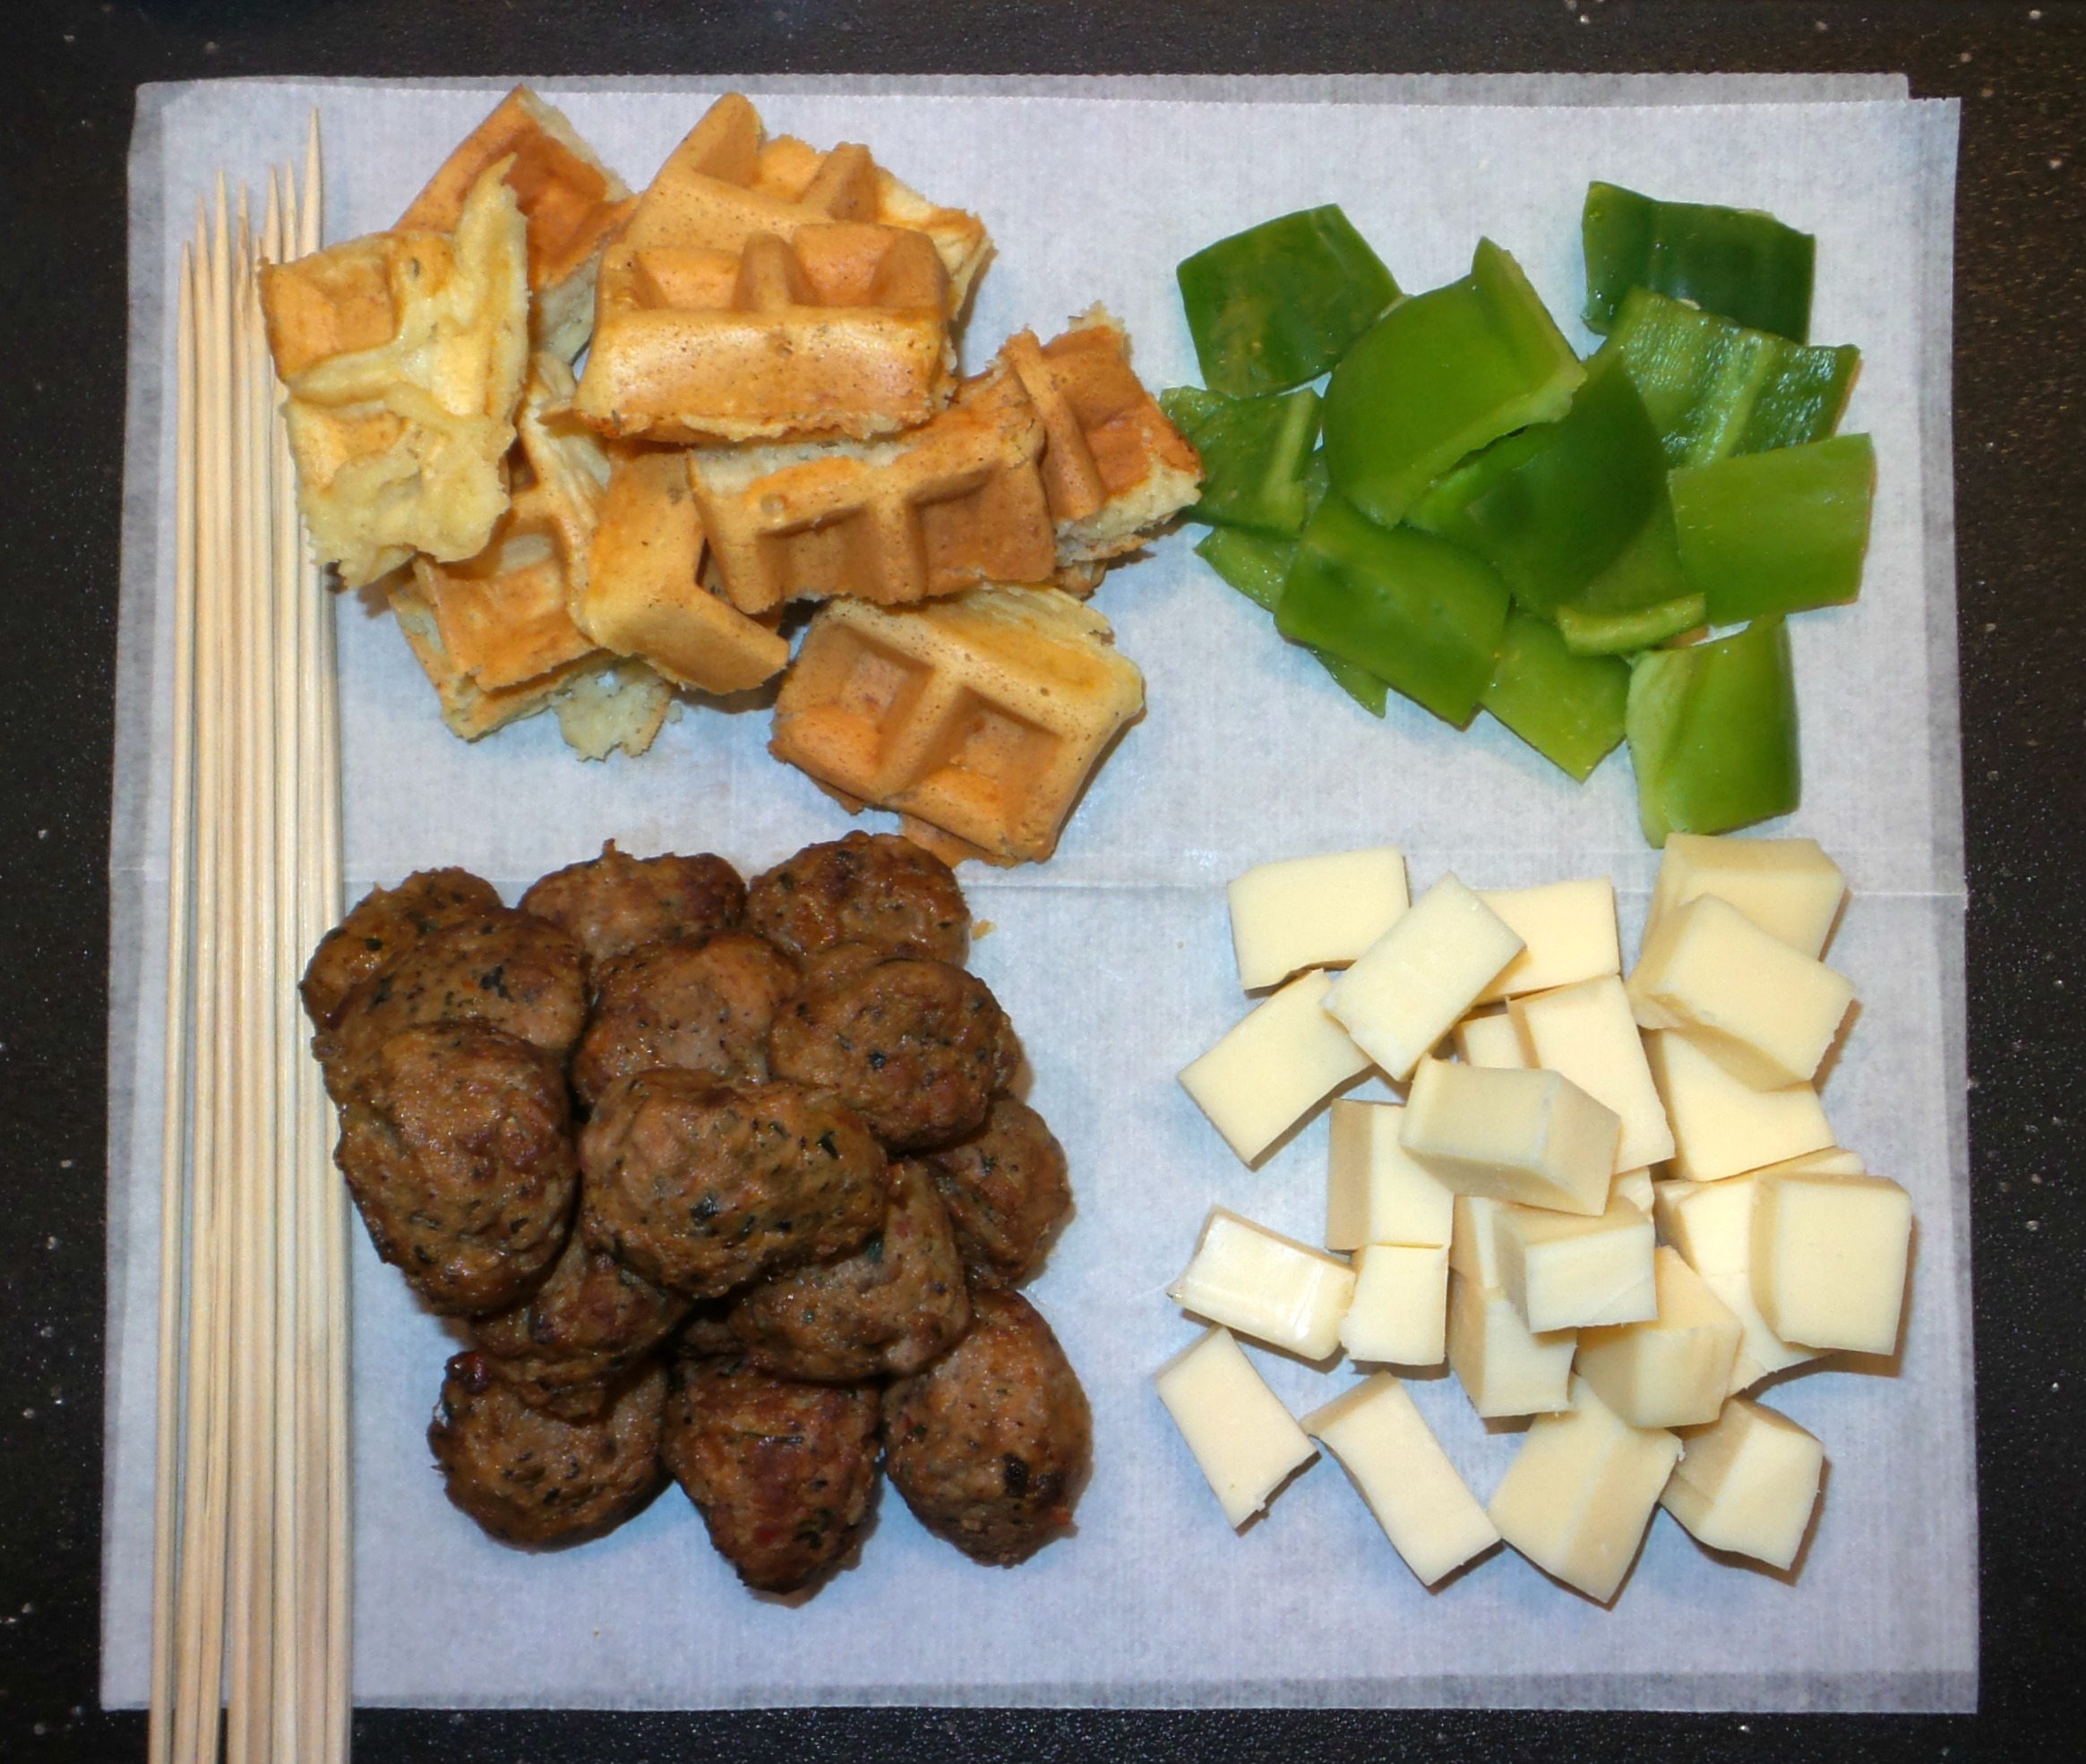 skewer ingredients